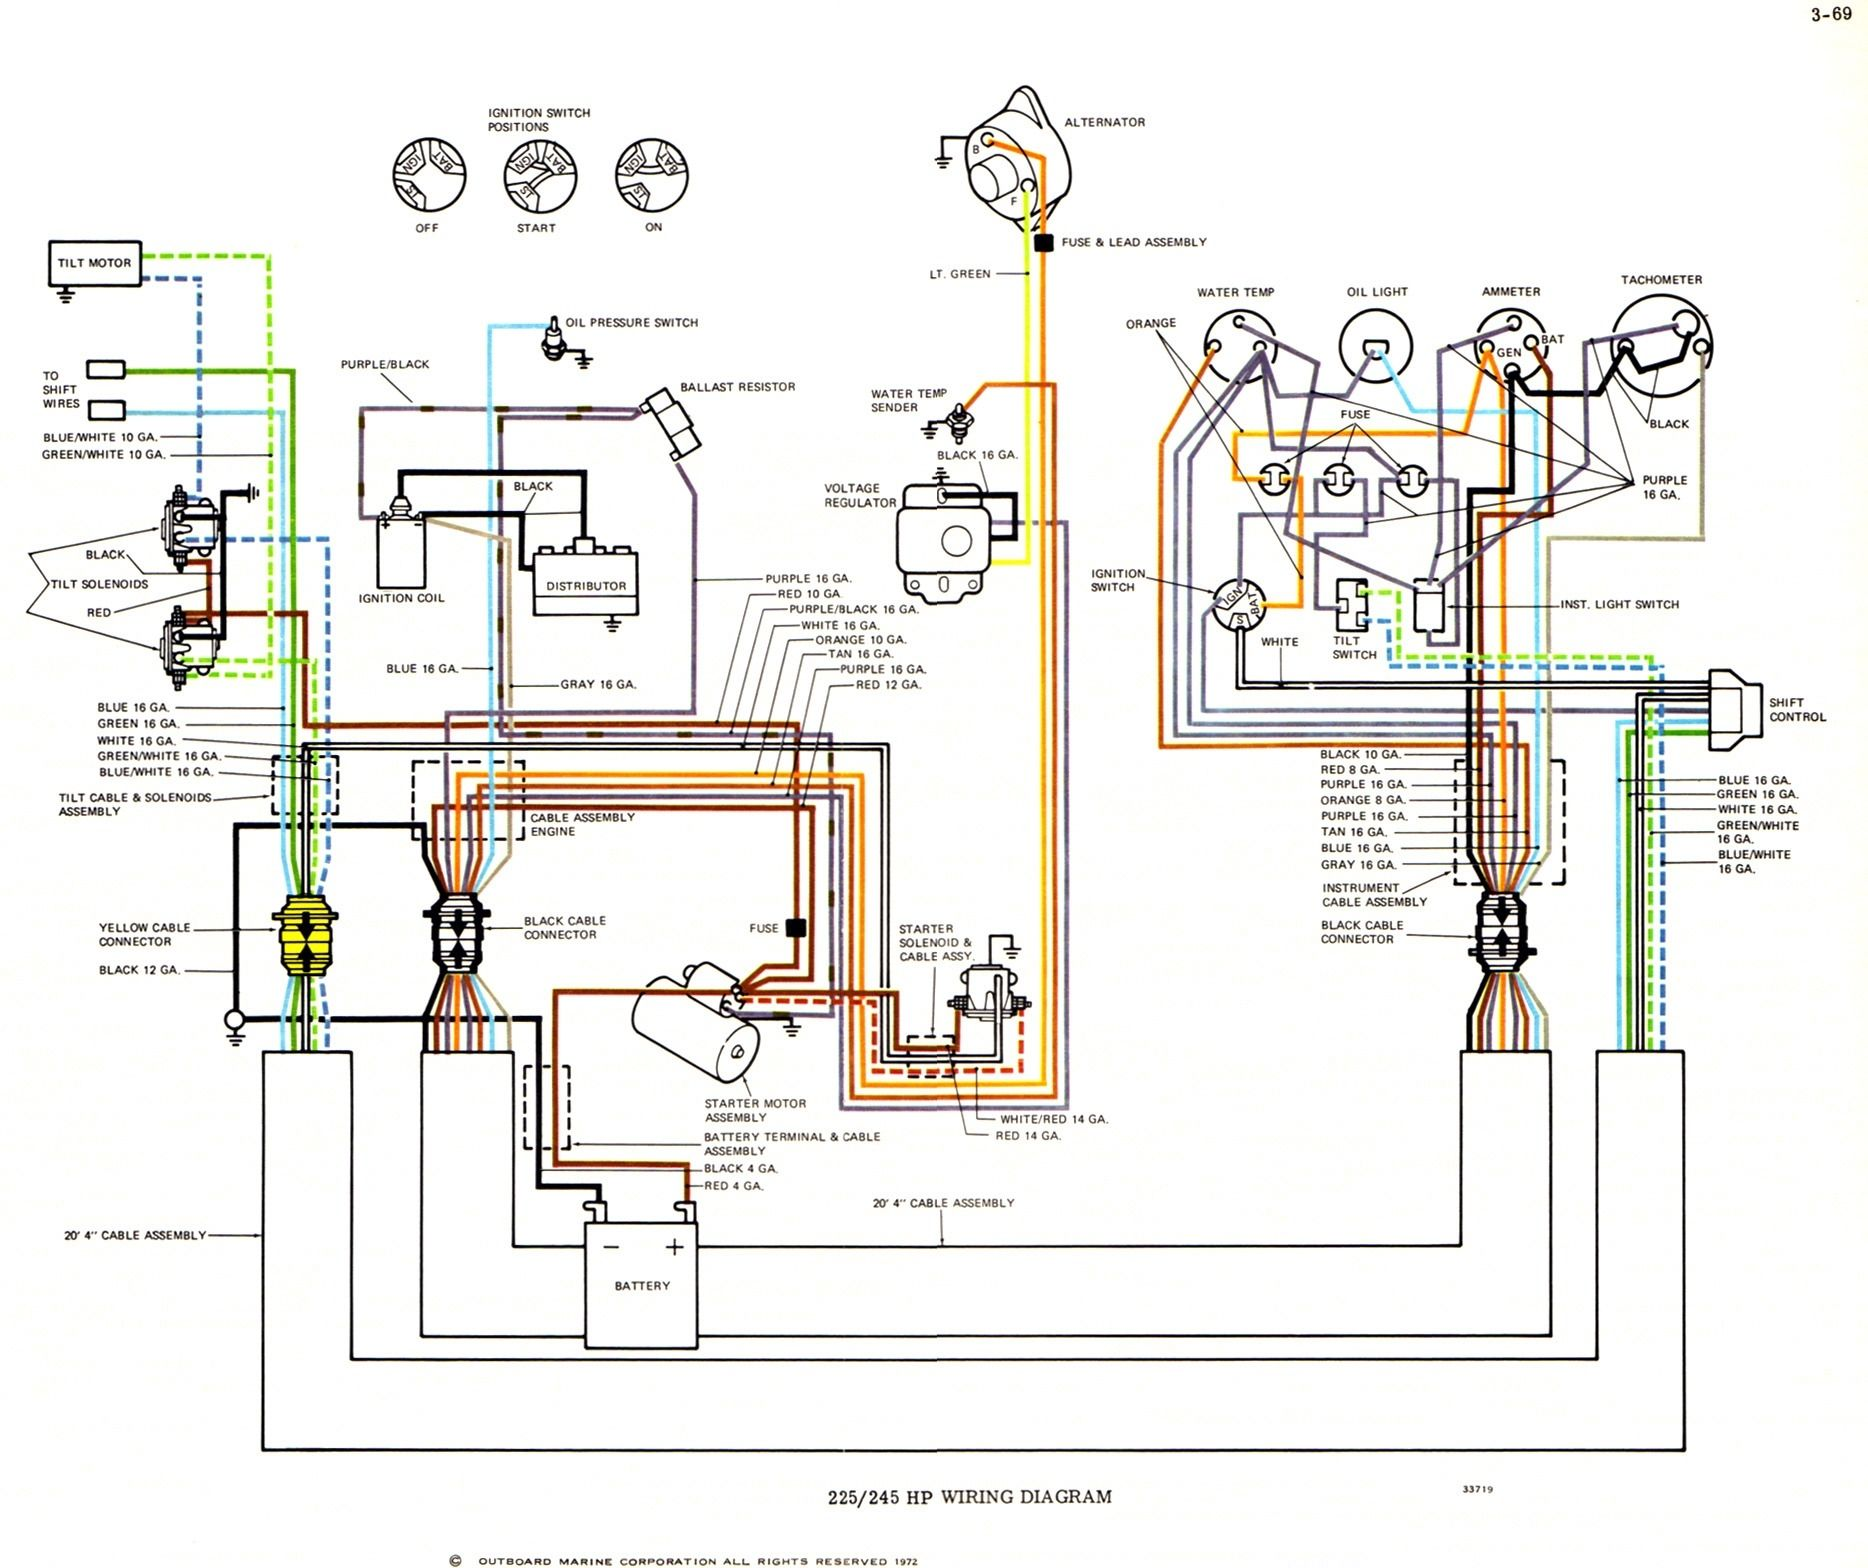 hight resolution of yamaha boat wiring blog wiring diagram yamaha boat wiring schematic yamaha boat wiring diagram